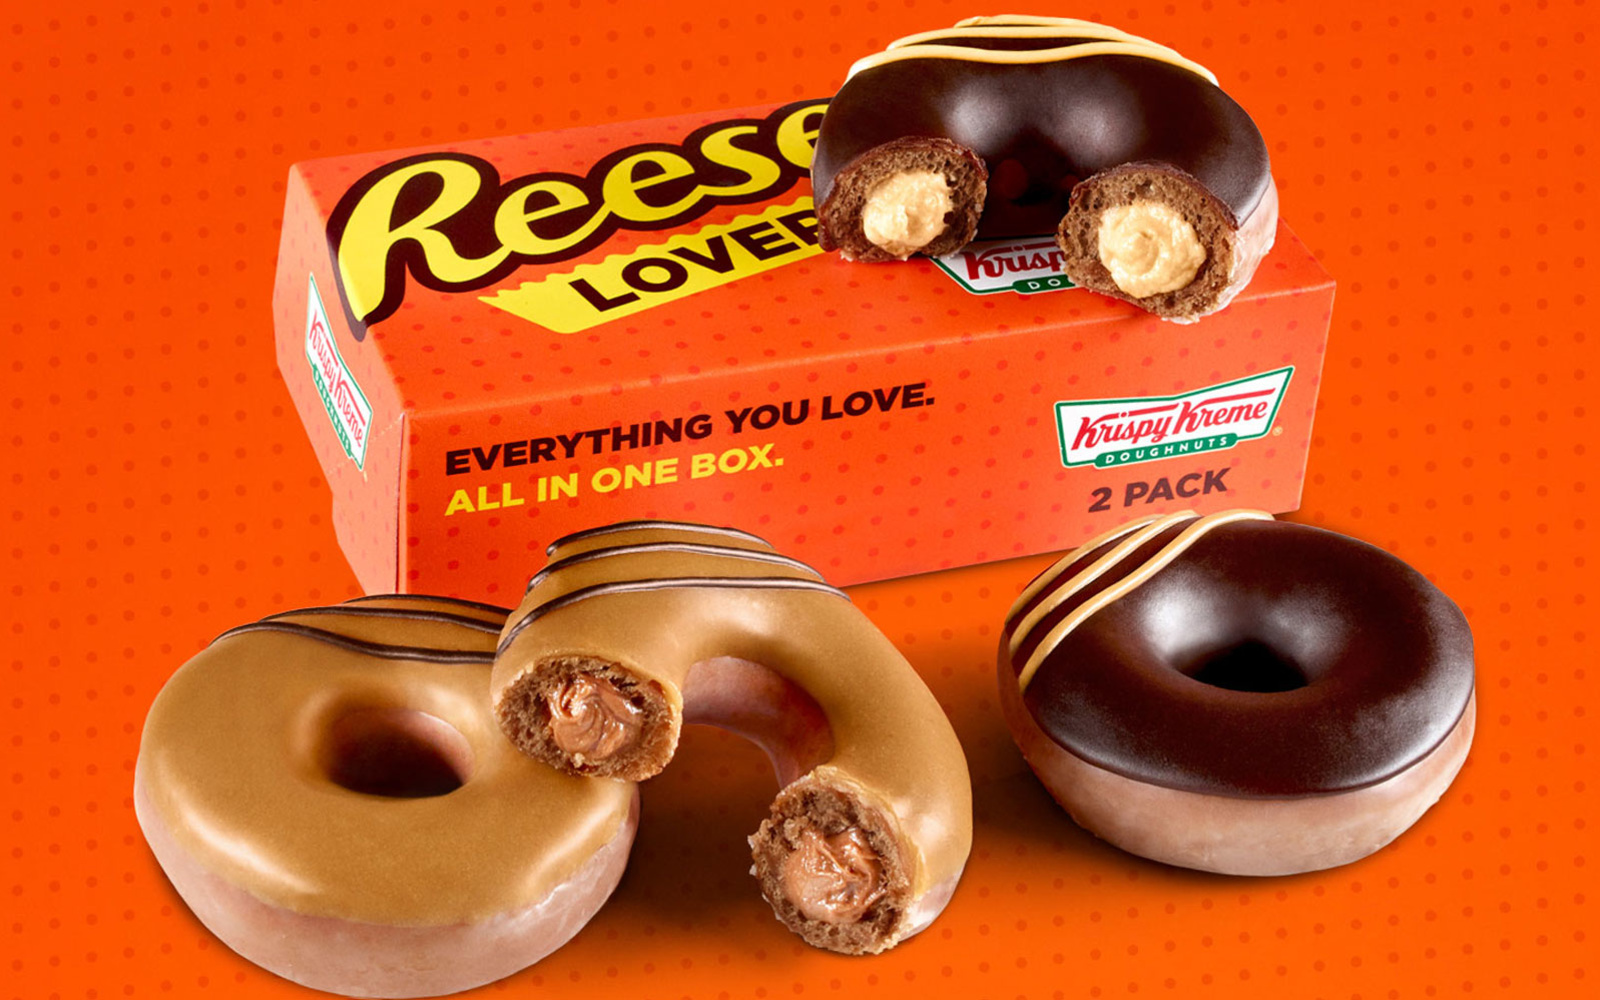 Krispy Kreme Turned Reese's Lovers Cups into Two New Doughnuts